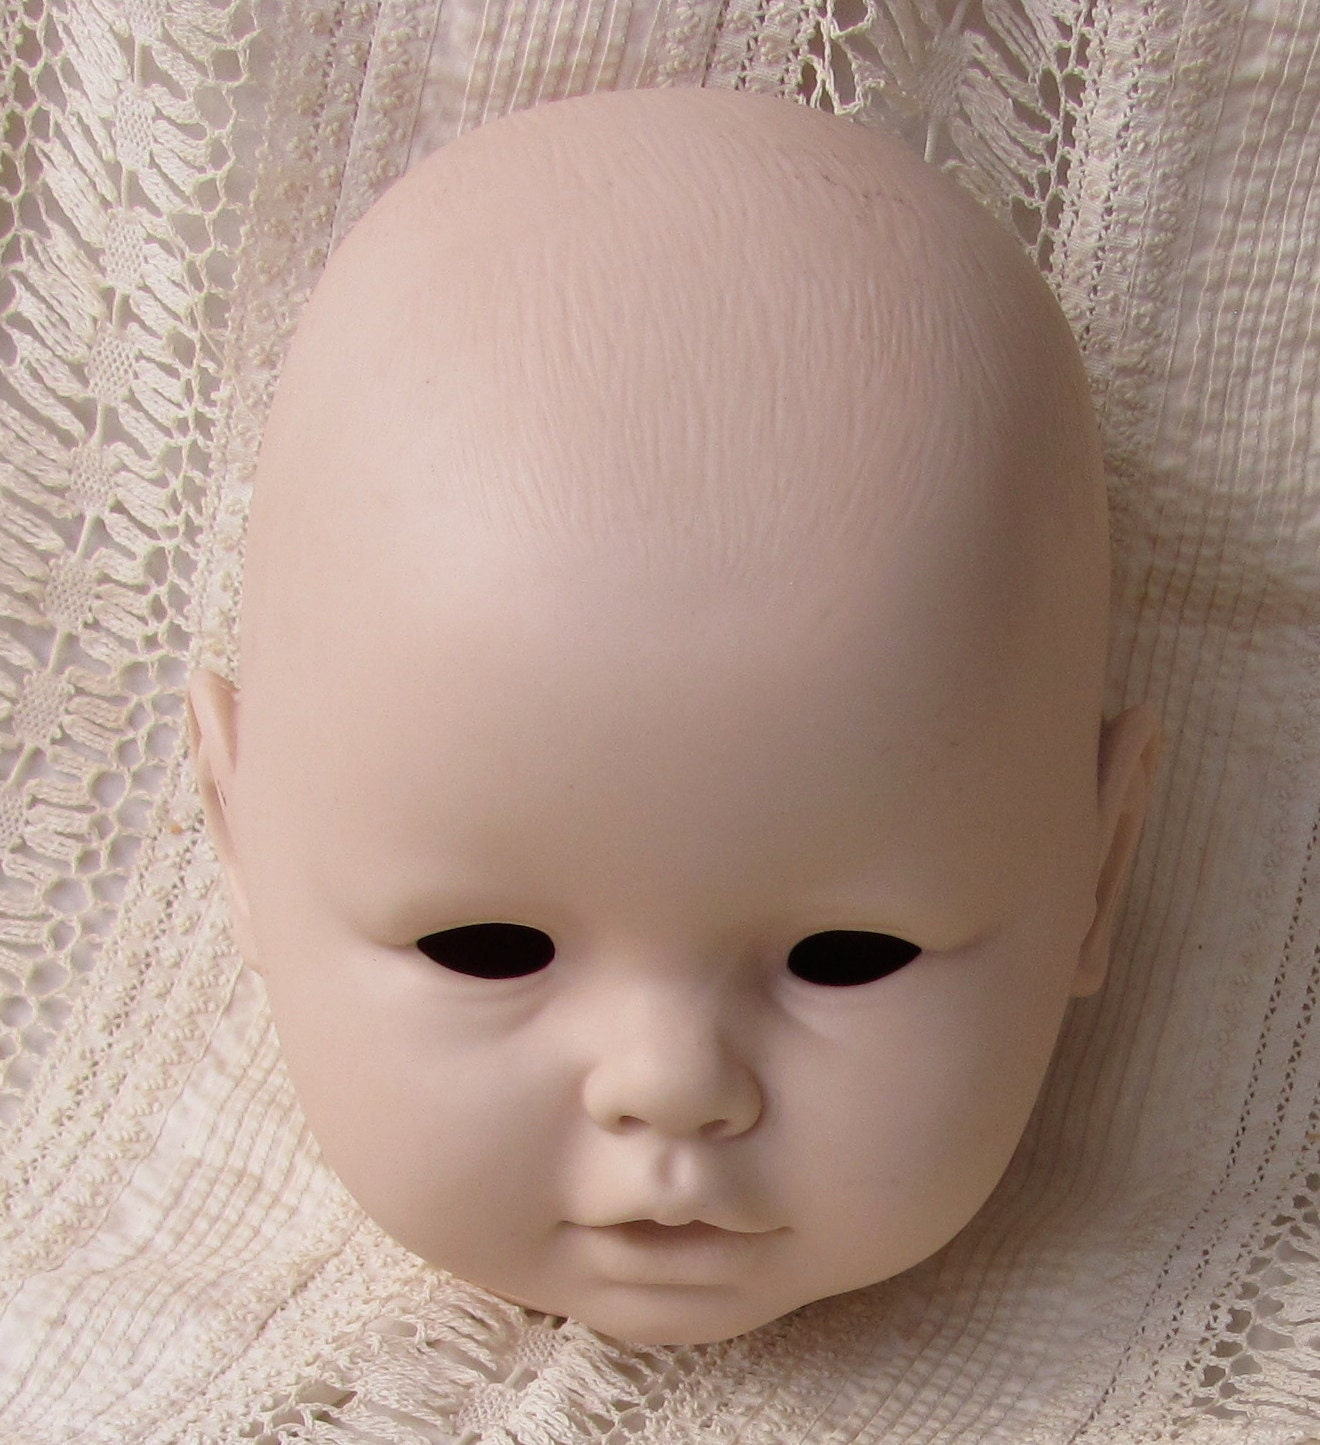 Large Baby Doll Head By My Broken - 335.8KB